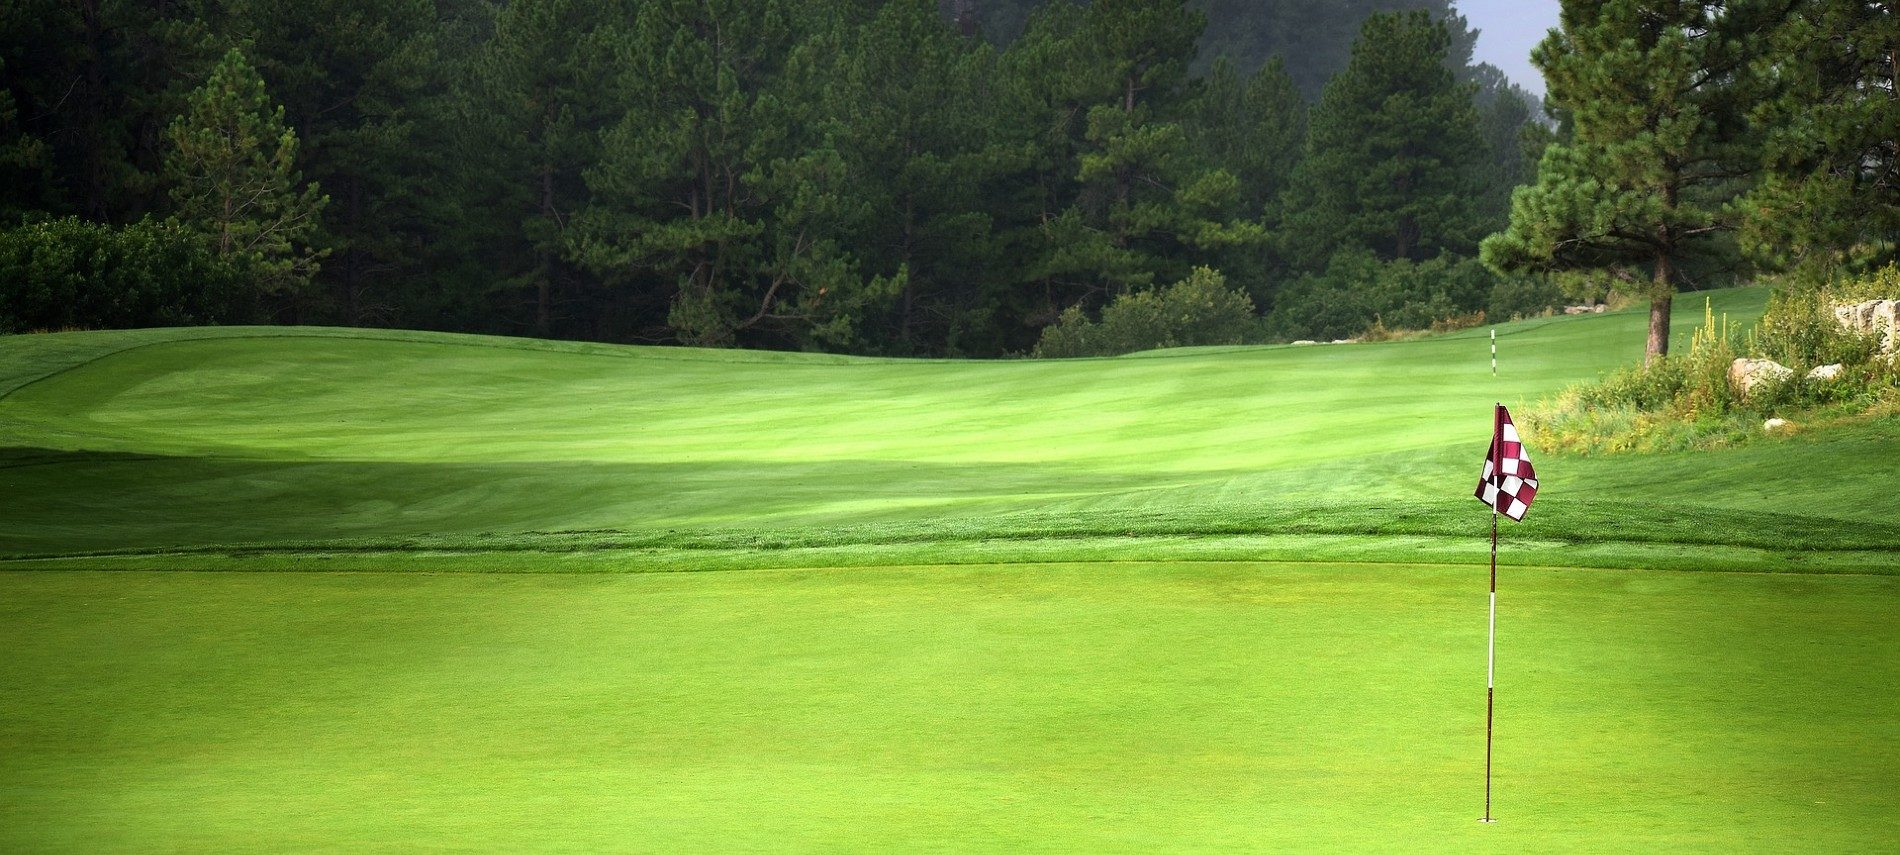 Golf course green with tall checkered flag in the hole and trees in the background